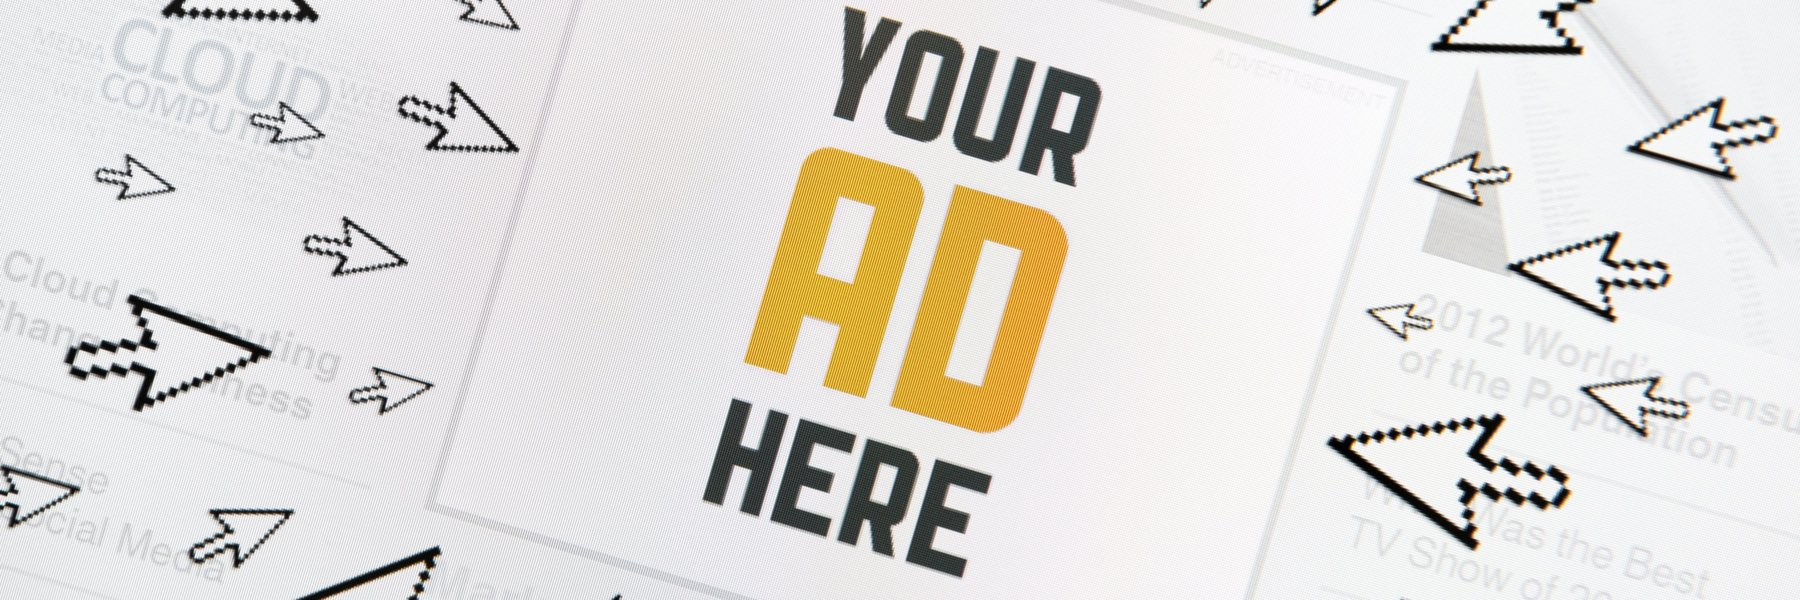 "Success internet banner with text ""YOUR AD HERE"" and lot of clicking pointers around. Conceptual image."